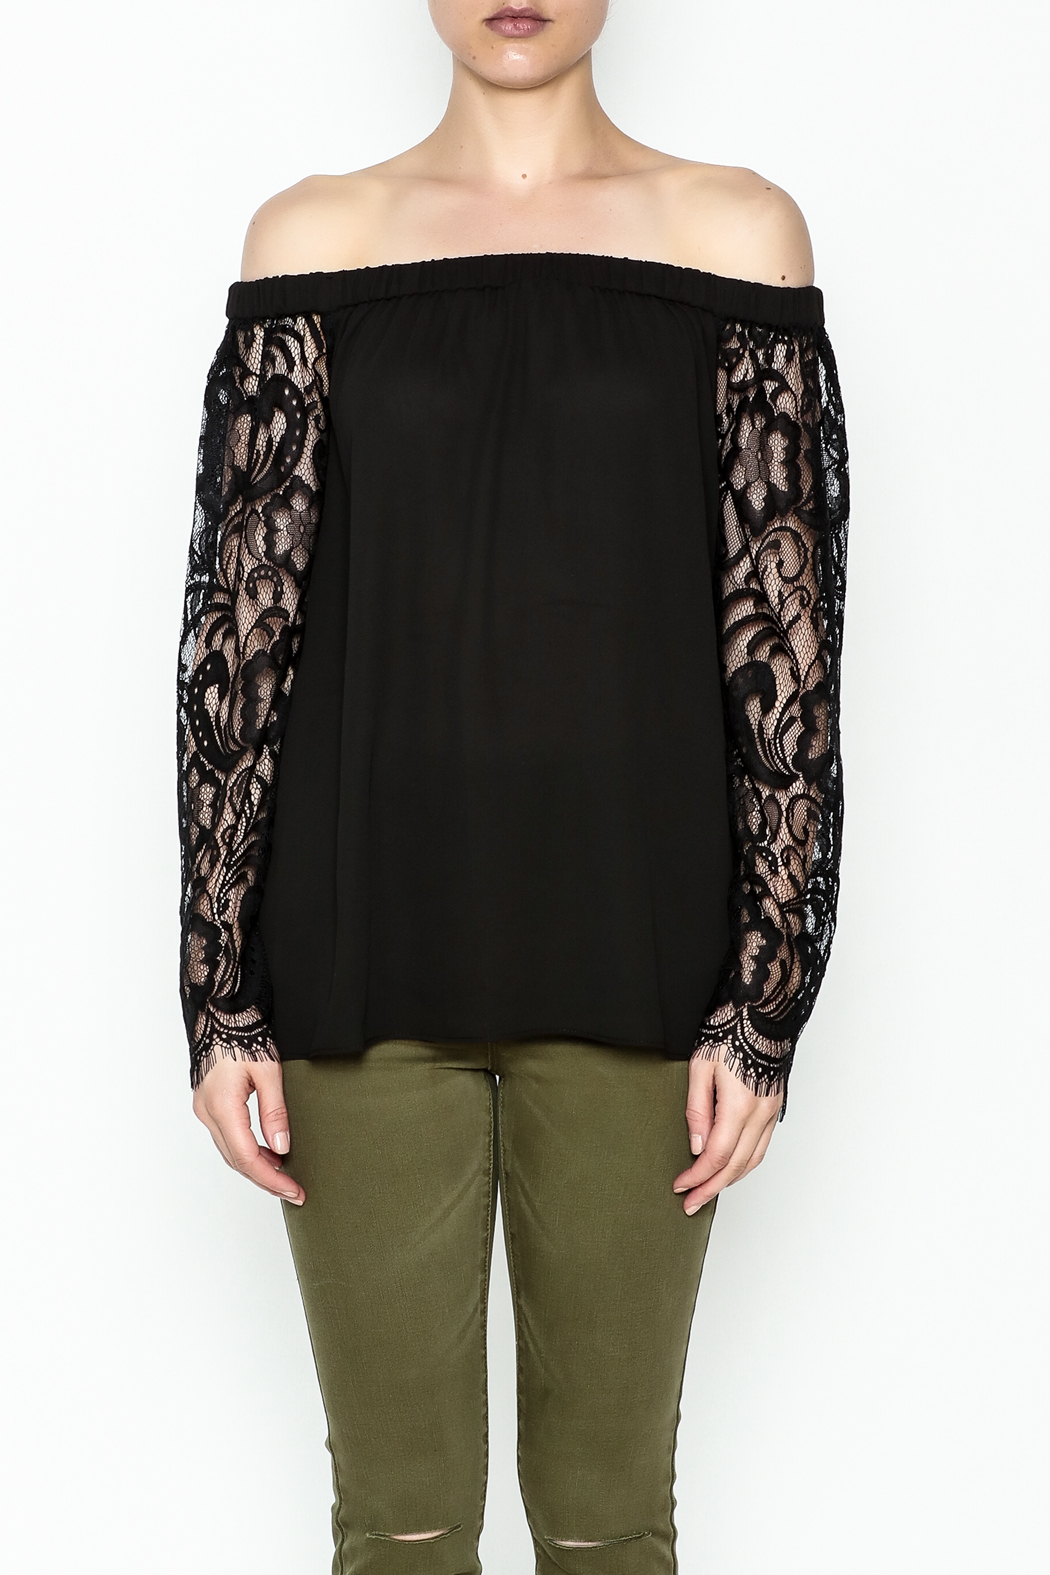 Dora Landa Lesley Off Shoulder Top - Front Full Image